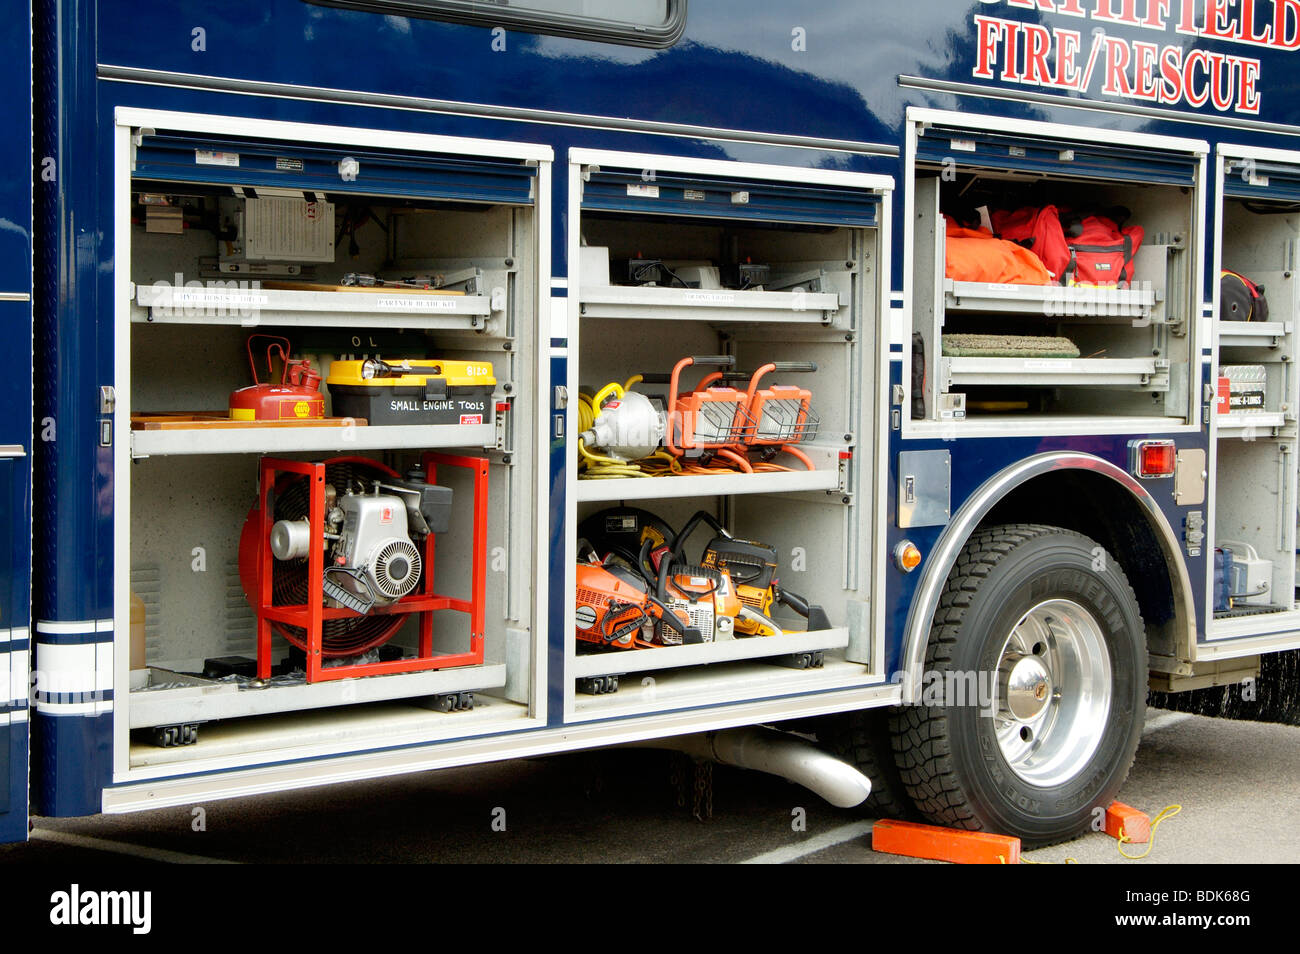 Fire department vehicle on display during a fire muster parade. Stock Photo